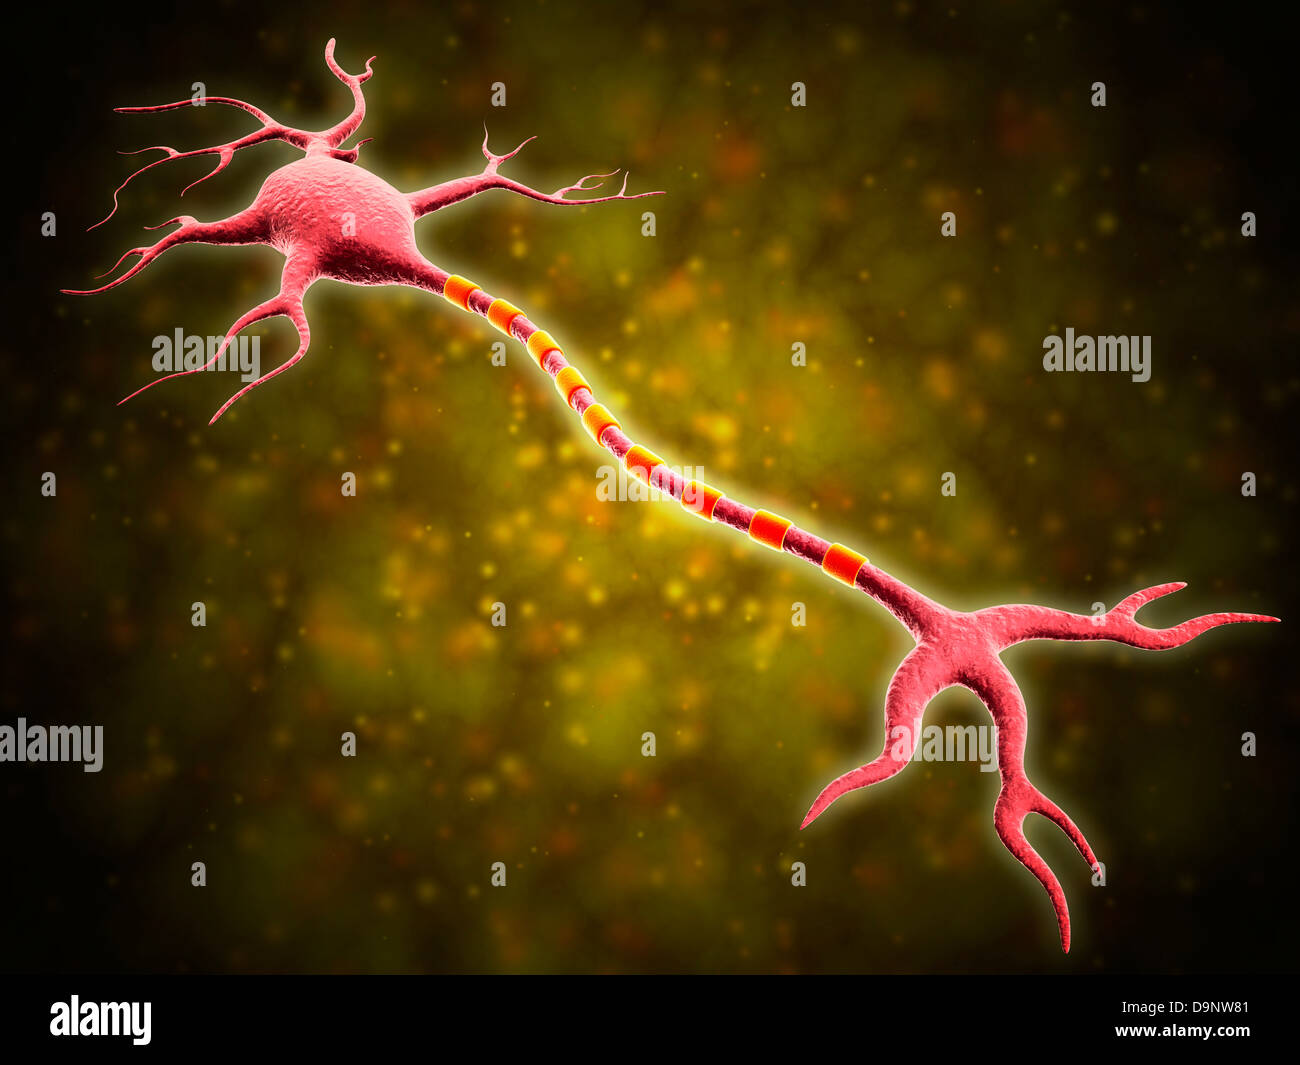 Microscopic view of a multipolar neuron. Multipolar neurons possess a single axon and many dendrites. - Stock Image